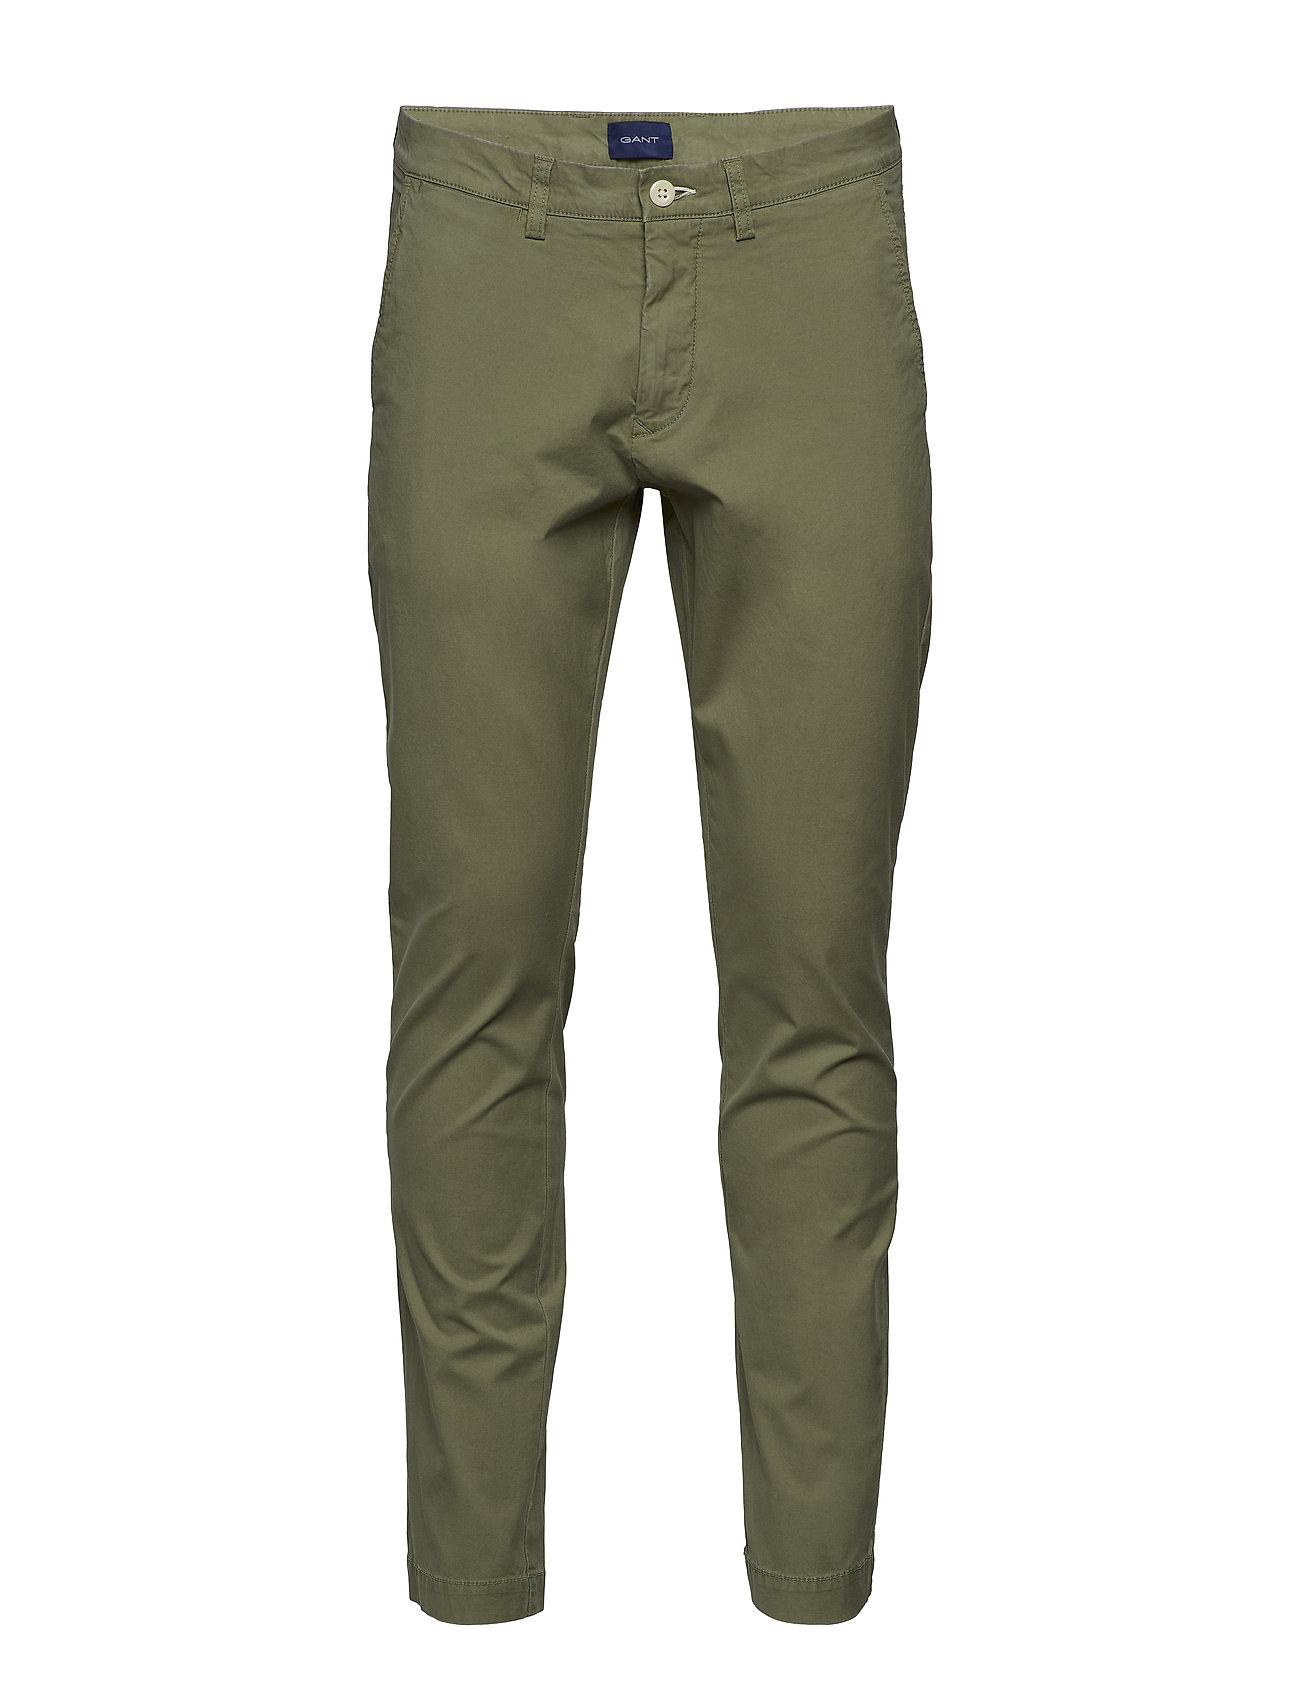 Gant D2. SLIM SUNFADED CHINO - OIL GREEN